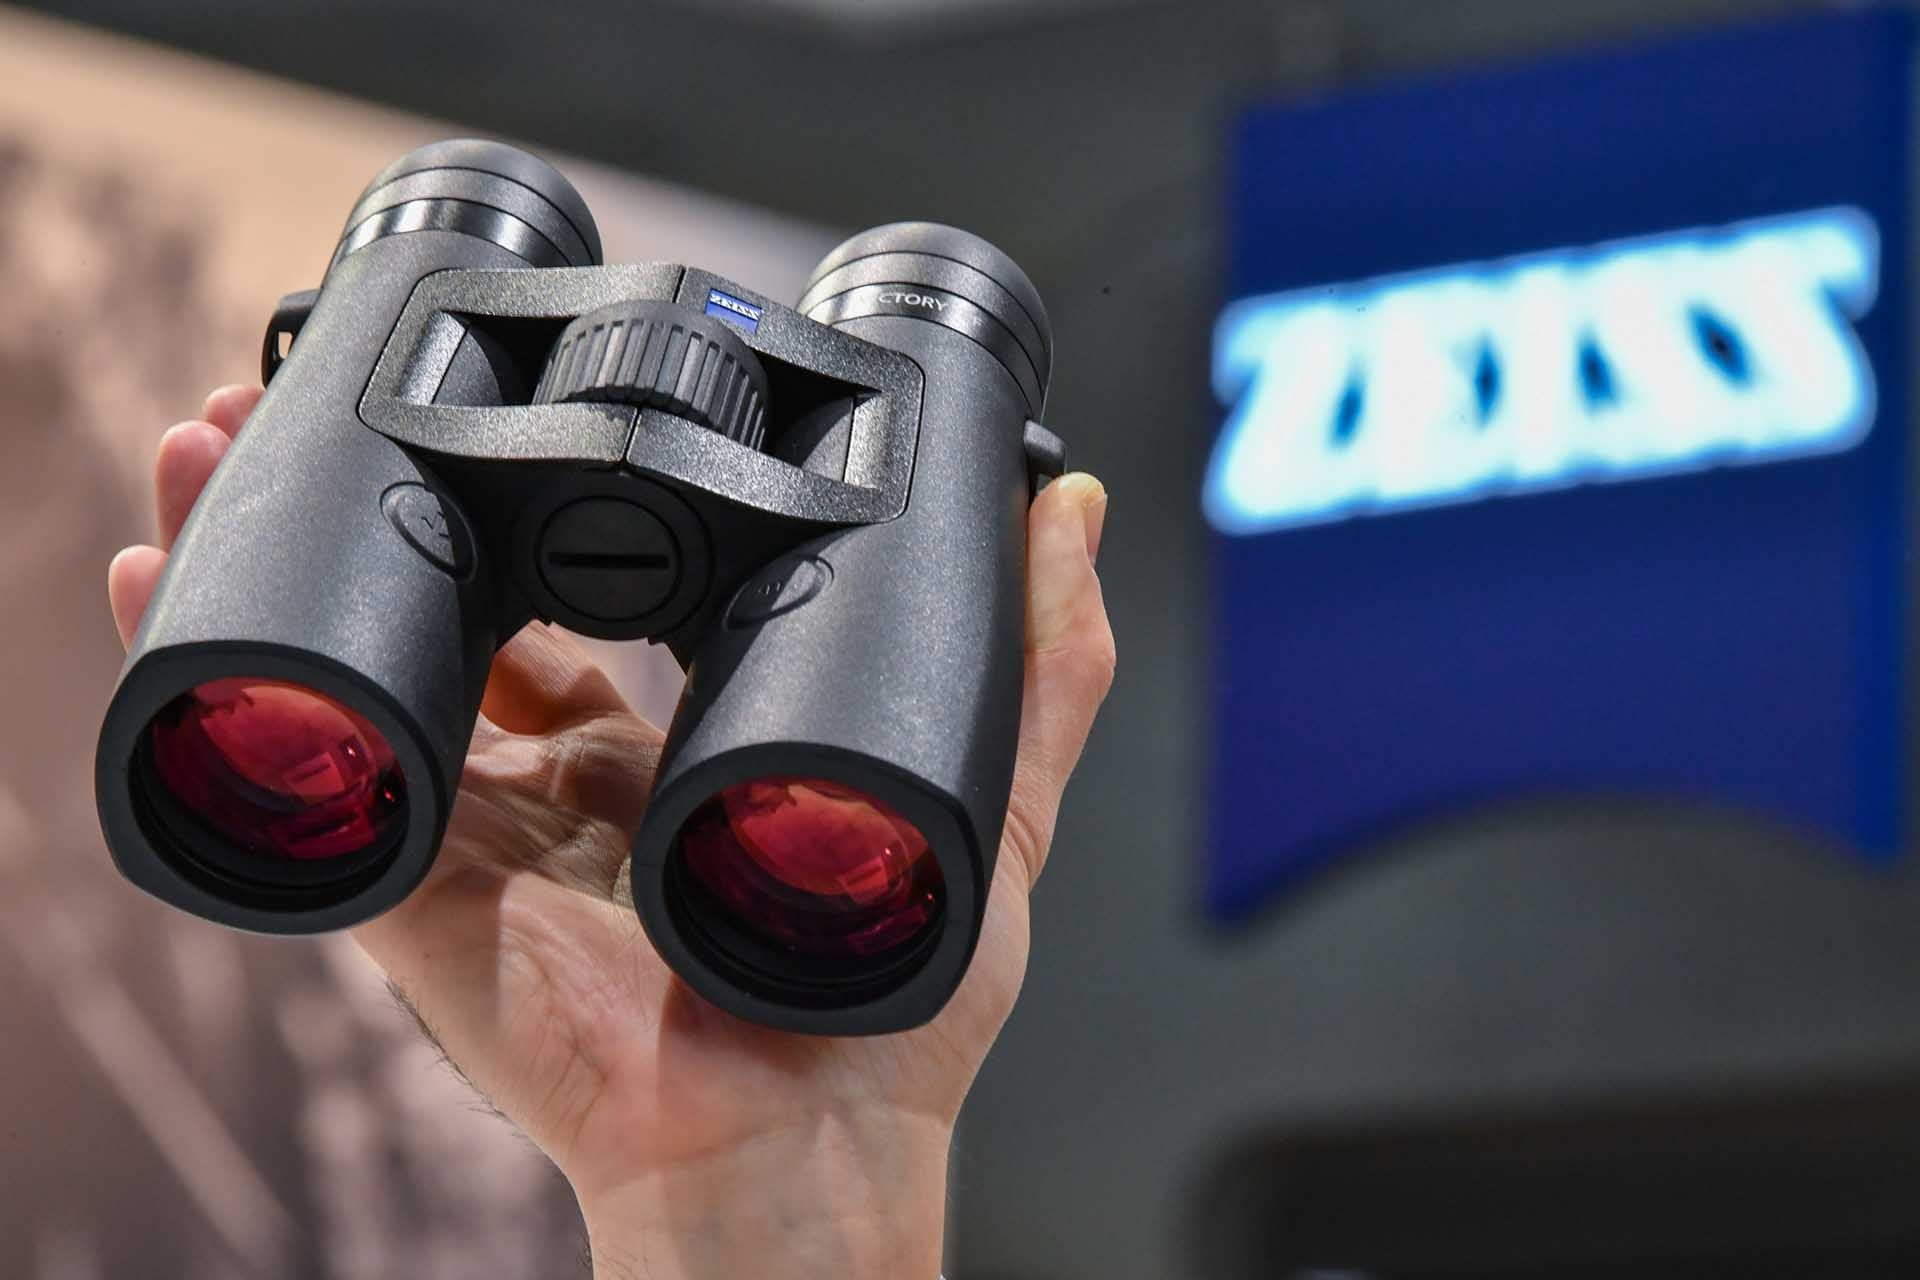 ZEISS at the IWA 2019: Hunting App and new brand campaign